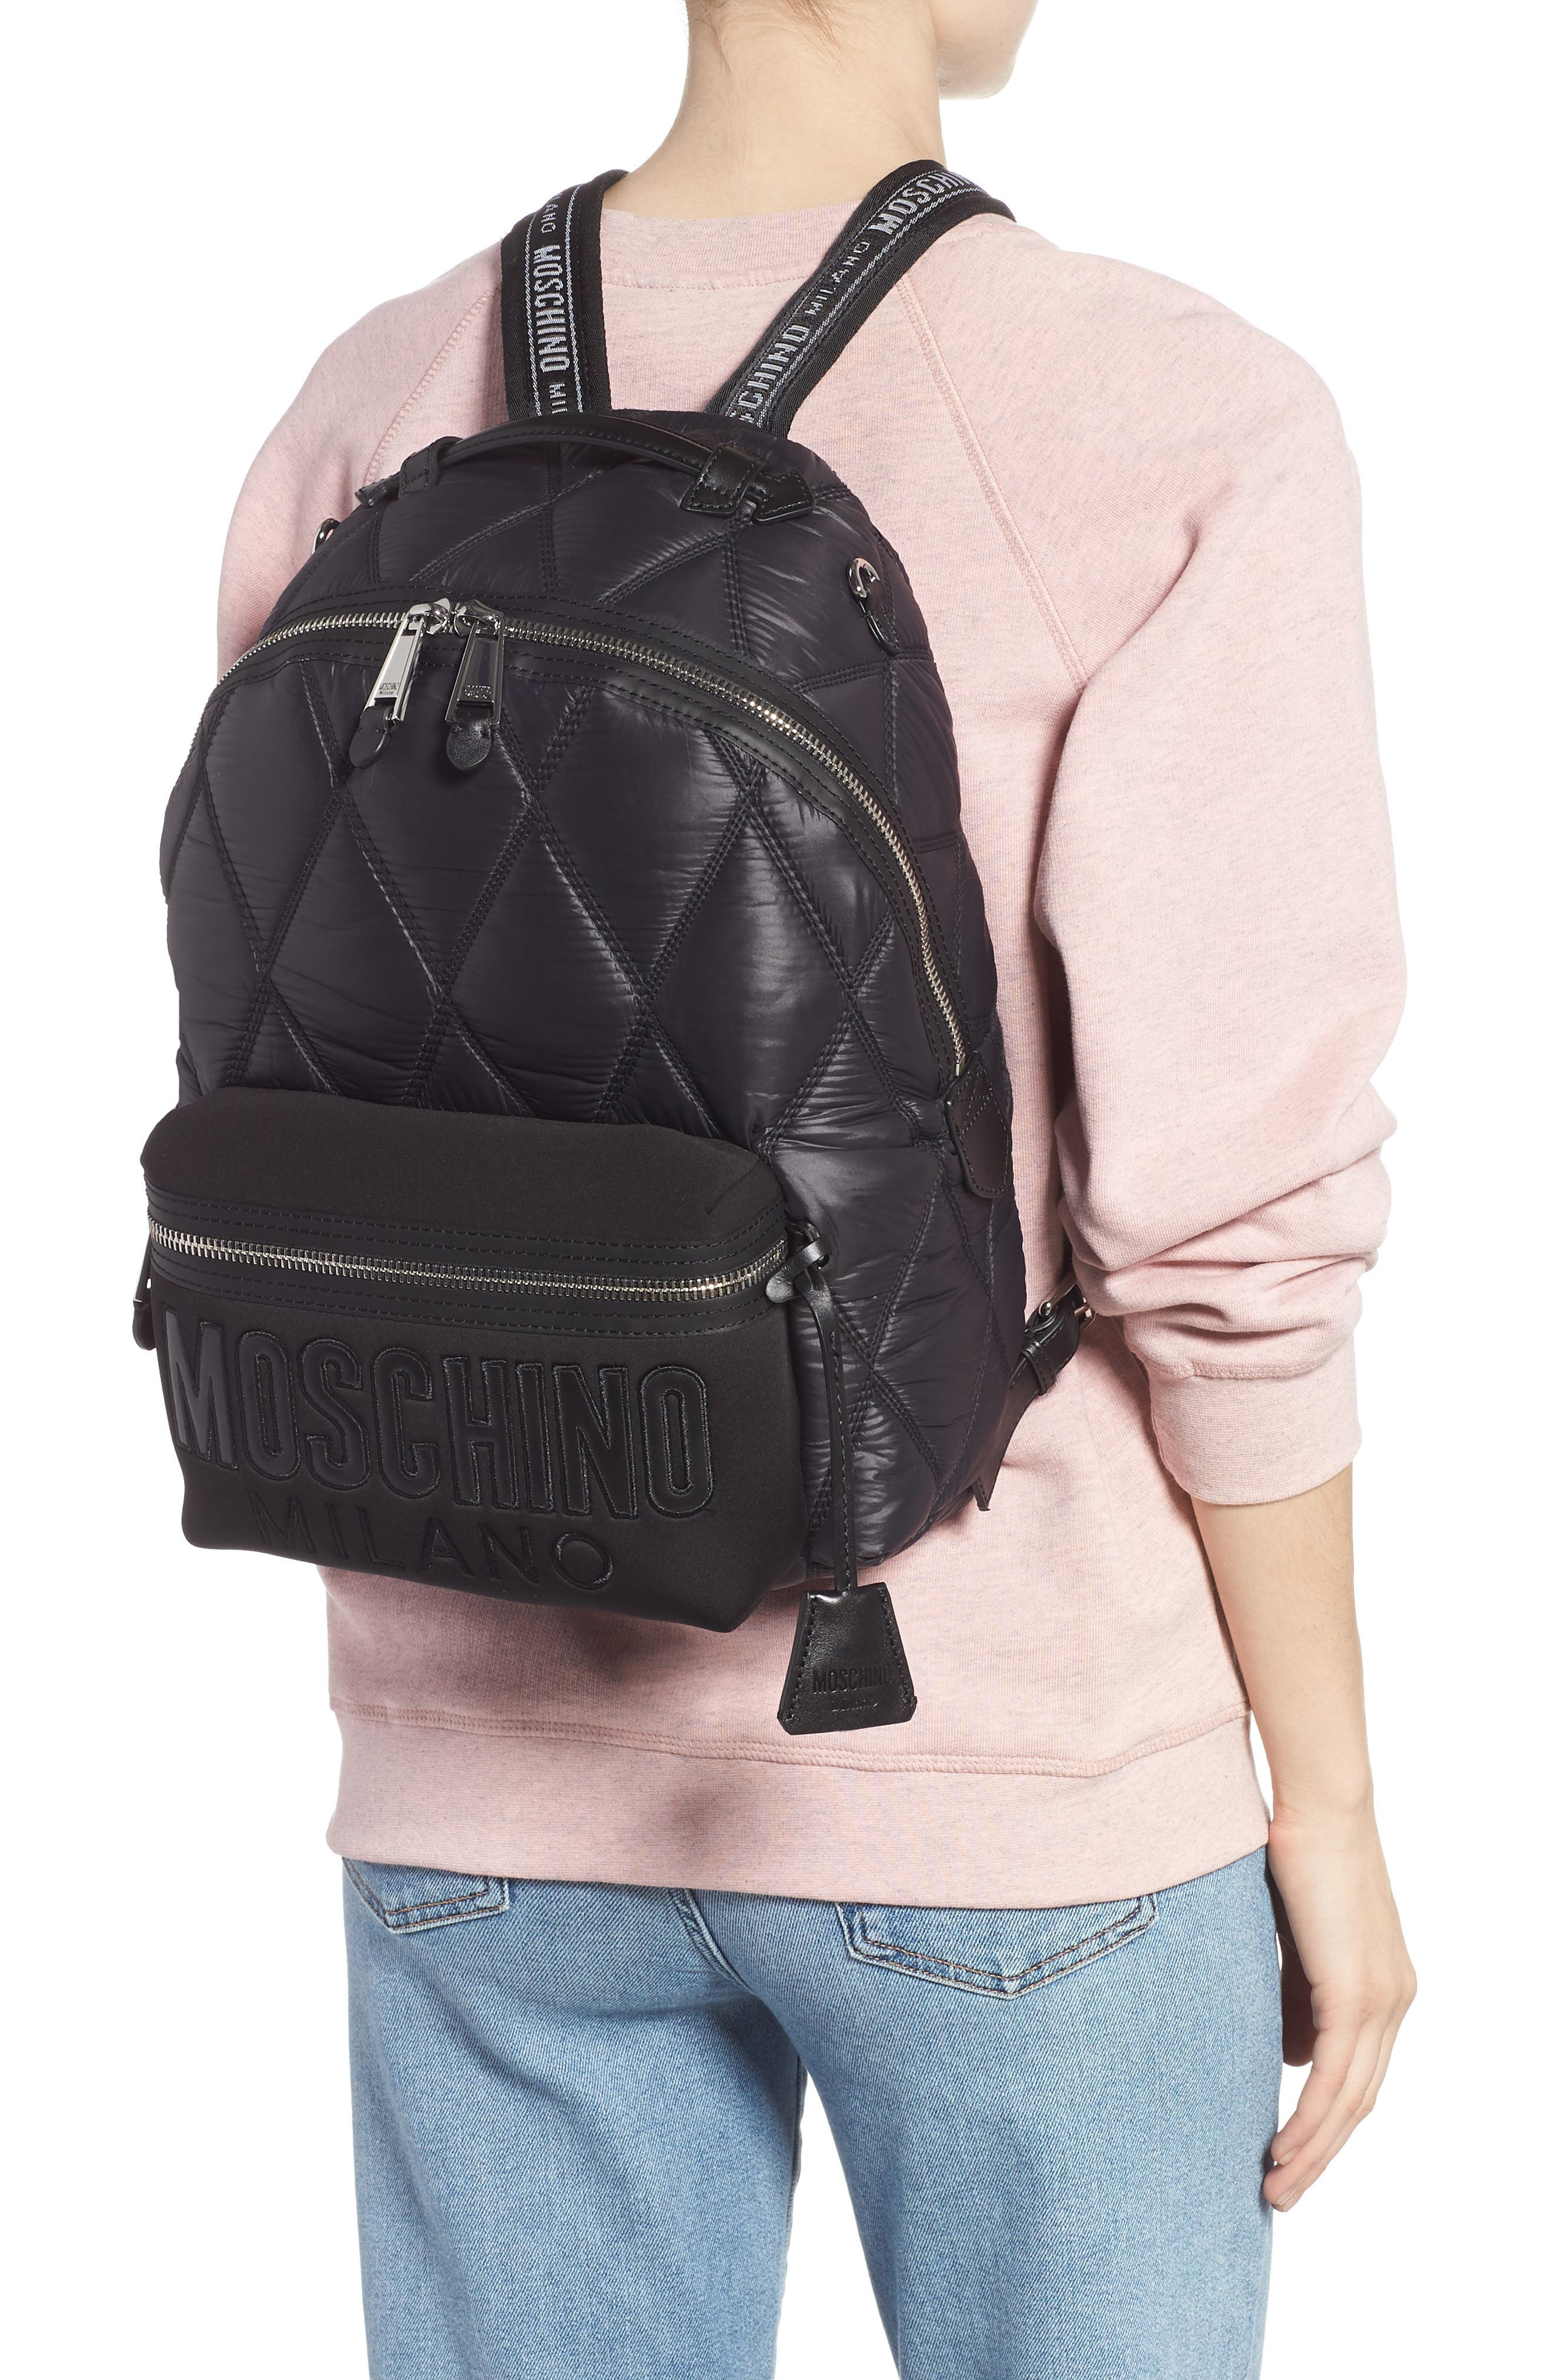 MOSCHINO, Quilted Nylon Backpack, Main thumbnail 1, color, BLACK